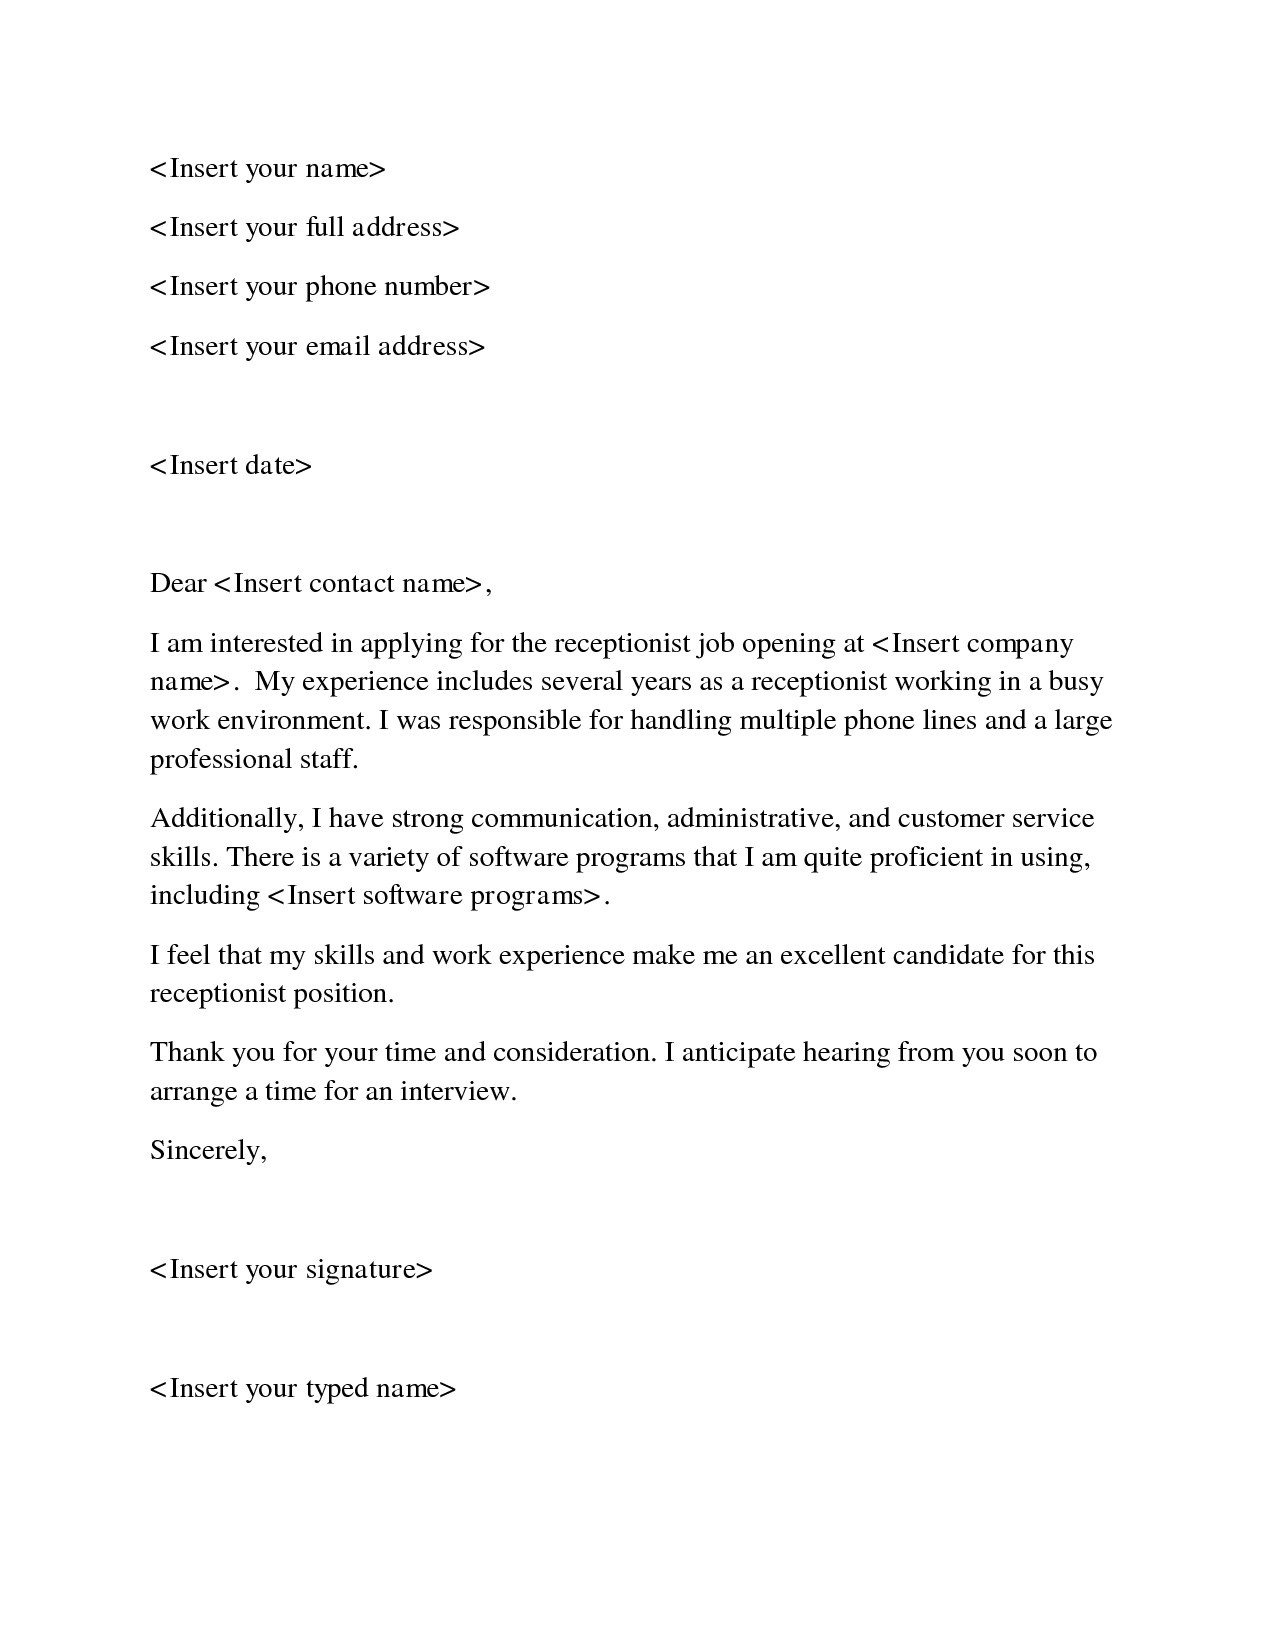 Resume Examples for Receptionist Job - Receptionist Resume Skills Resume Sample for Job All Resume